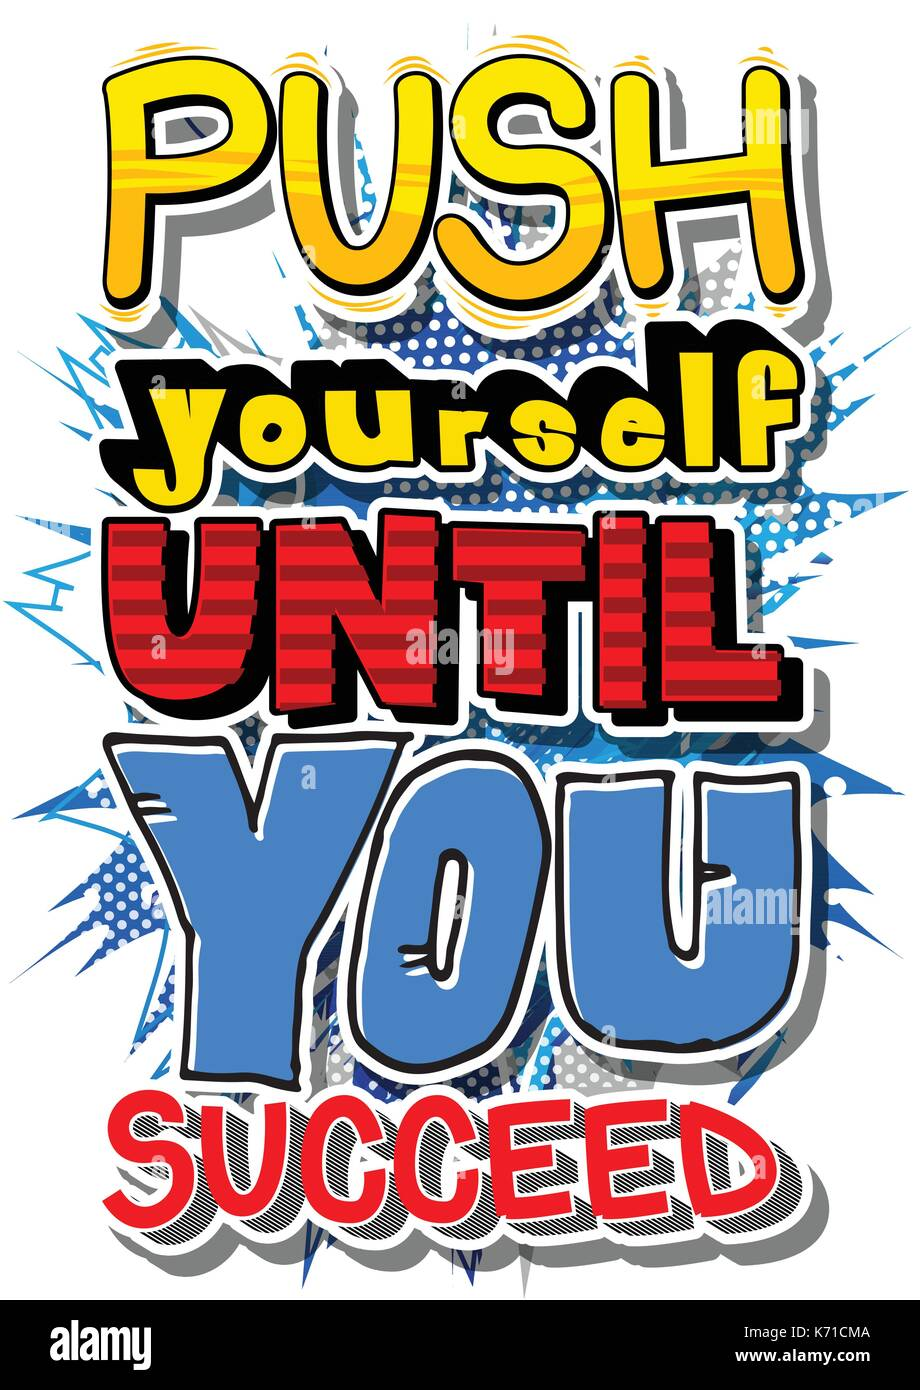 Push yourself until you succeed vector illustrated comic book style push yourself until you succeed vector illustrated comic book style design inspirational motivational quote solutioingenieria Choice Image